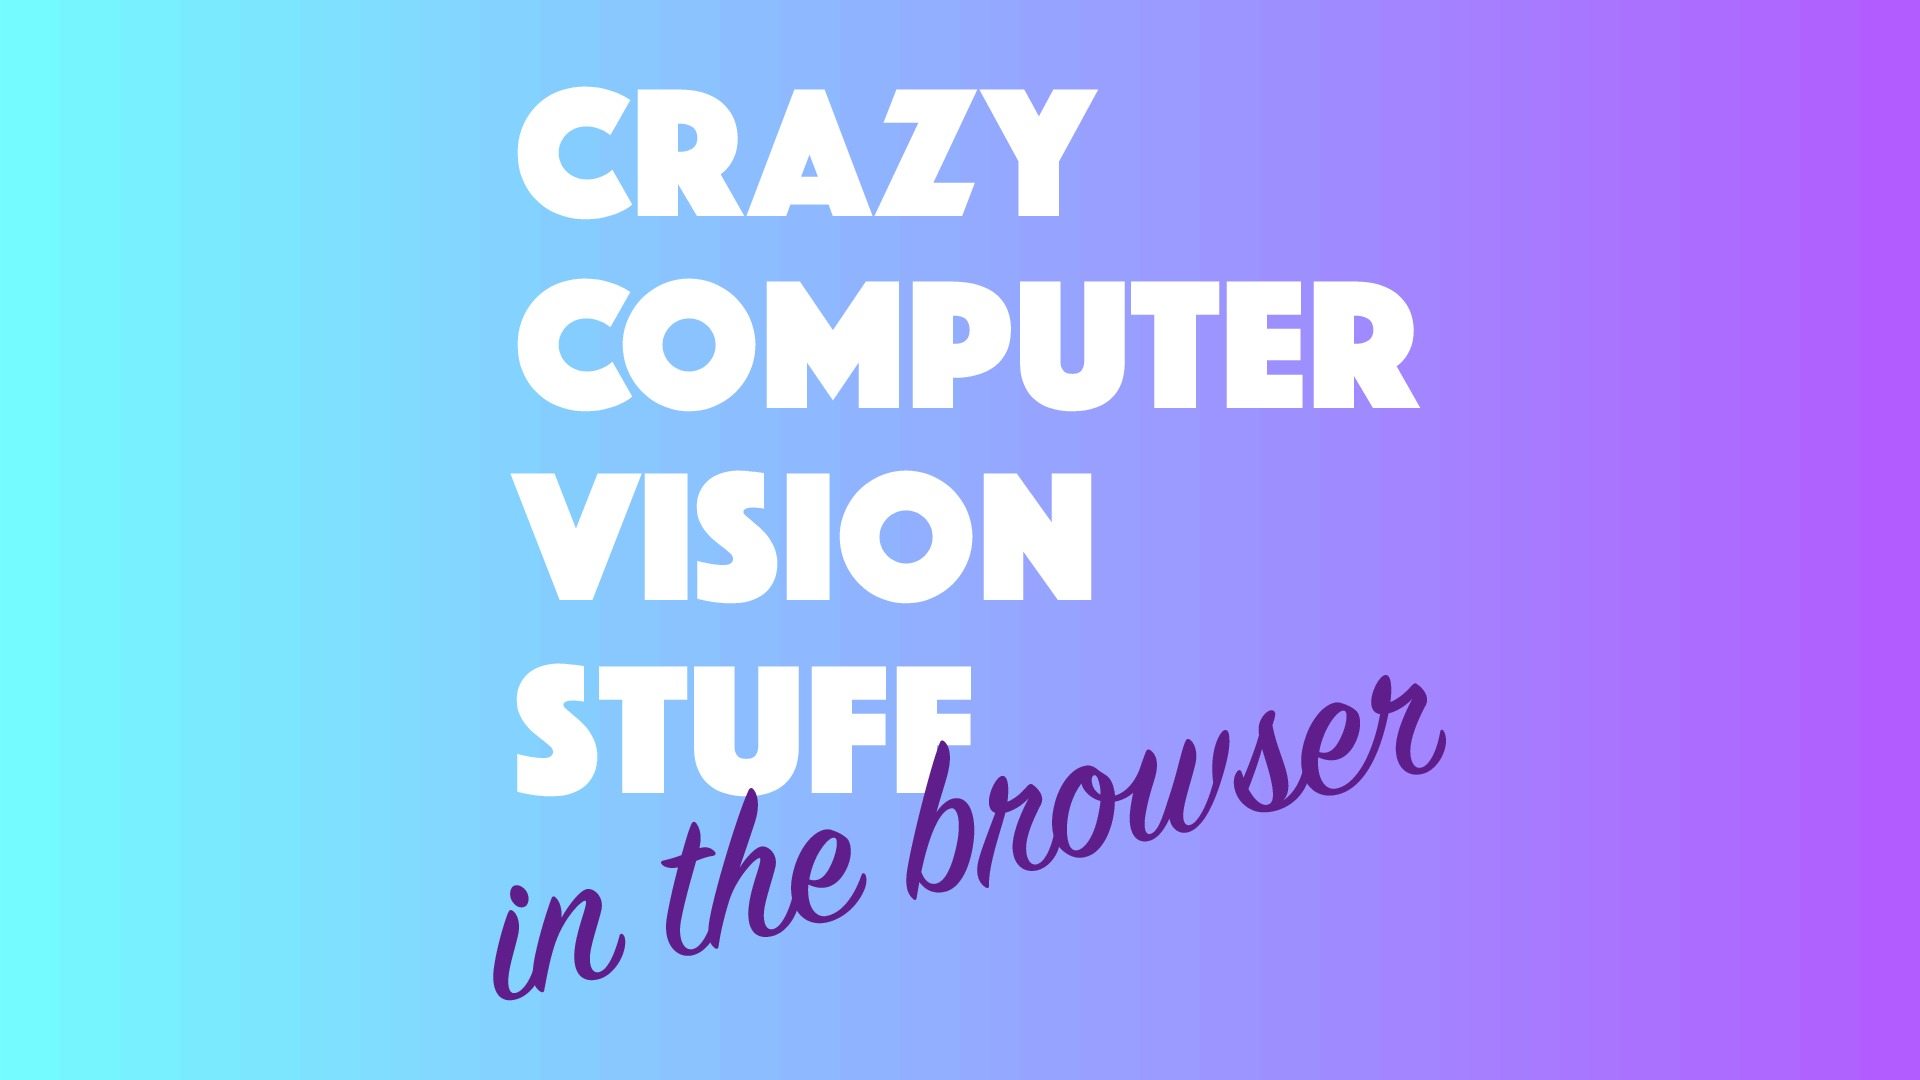 Crazy computer vision stuff in the browser